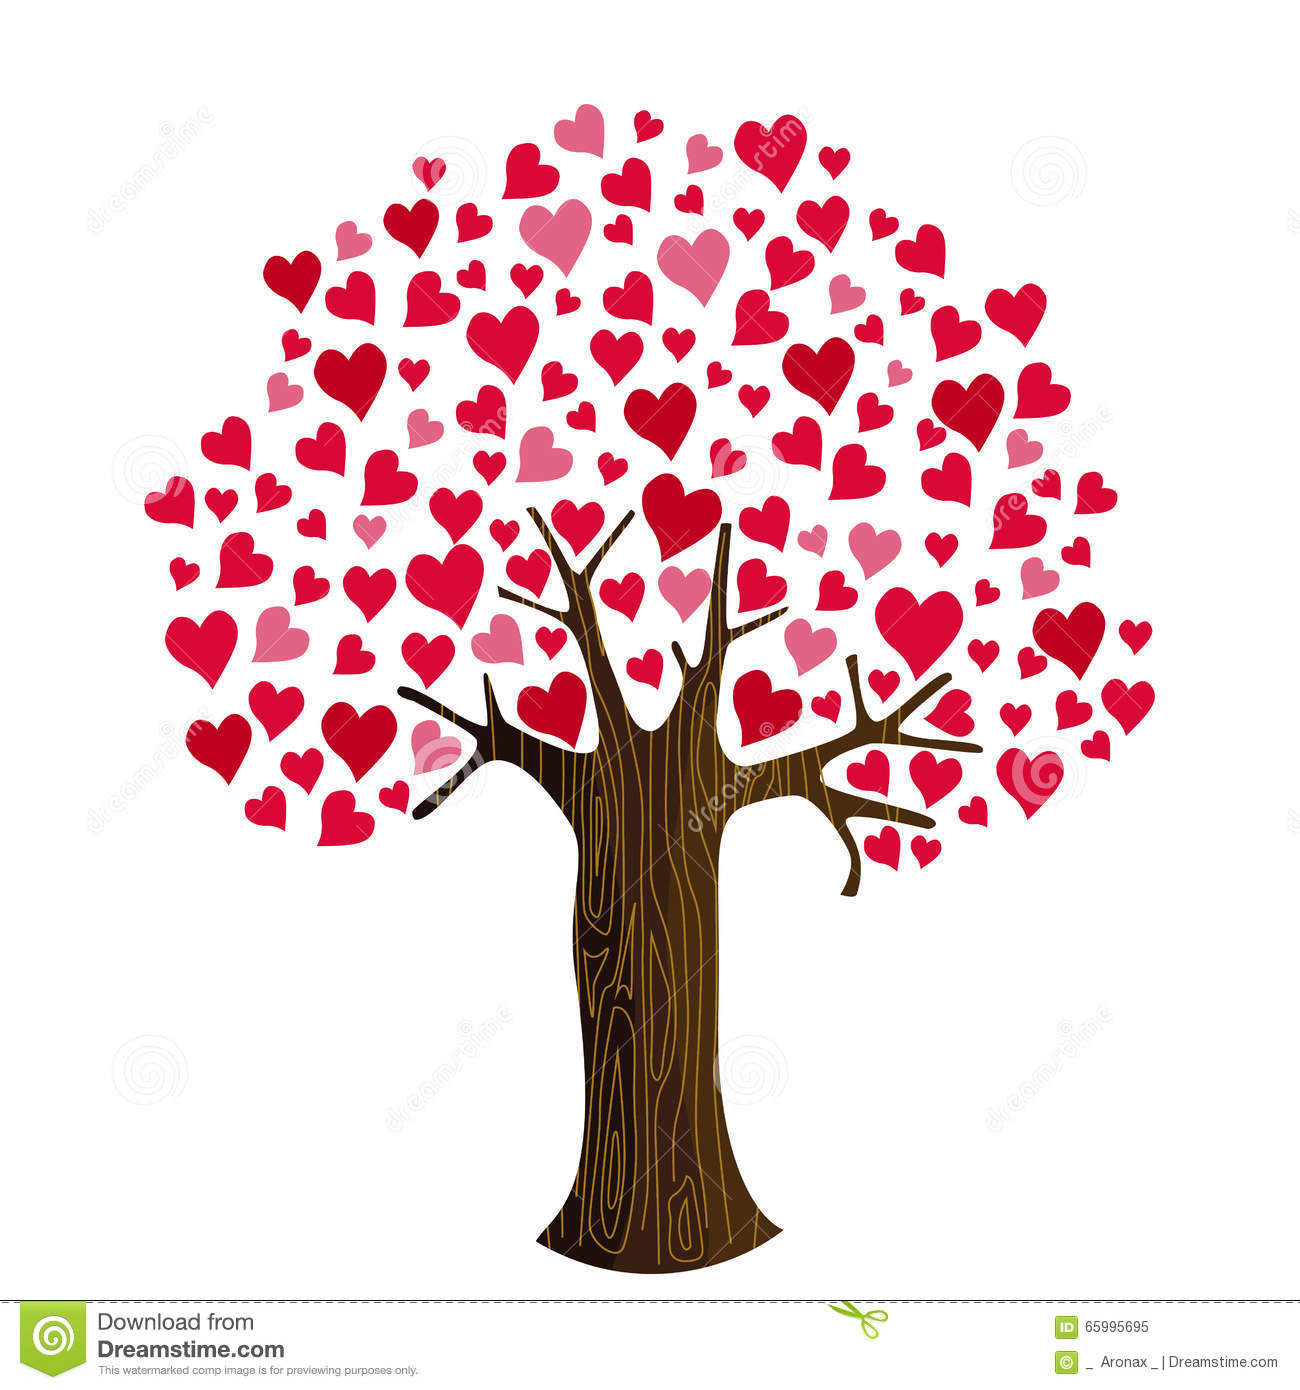 Clipart hearts in tree jpg royalty free library Valentine's Day Hearts On Tree Clip Art Stock Photos - Image: 3909863 jpg royalty free library